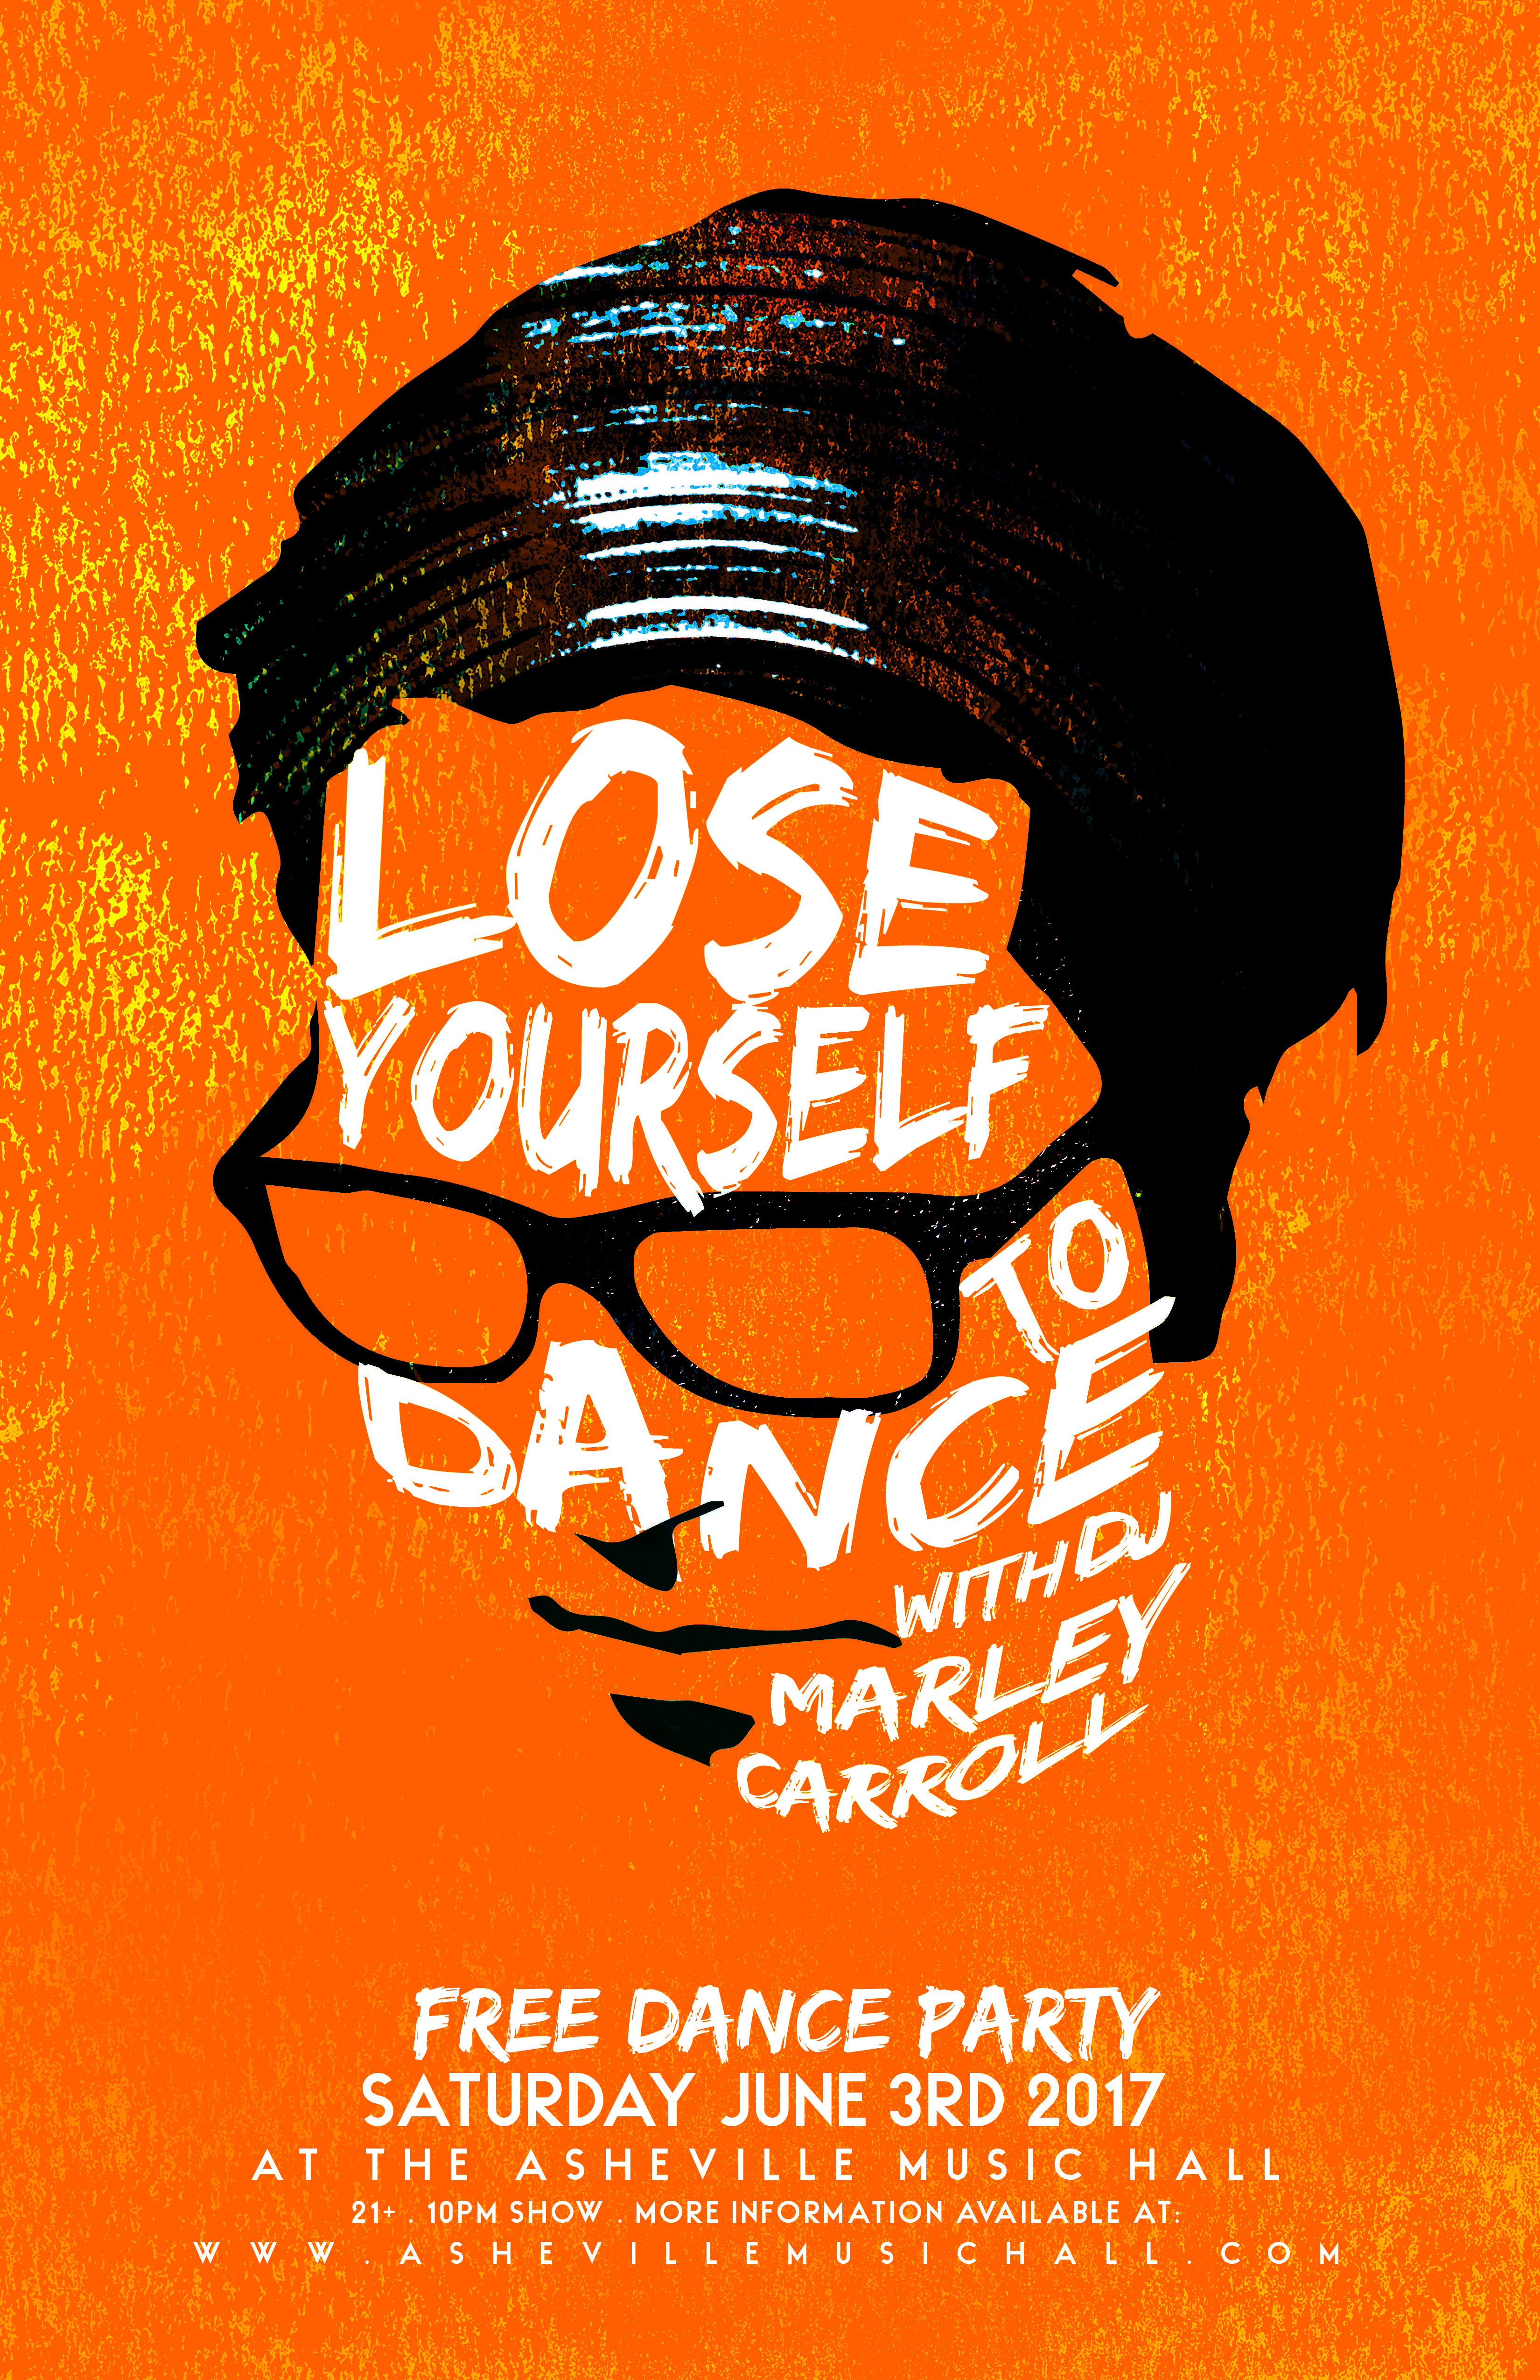 Lose Yourself to Dance Party w/ DJ Marley Carroll